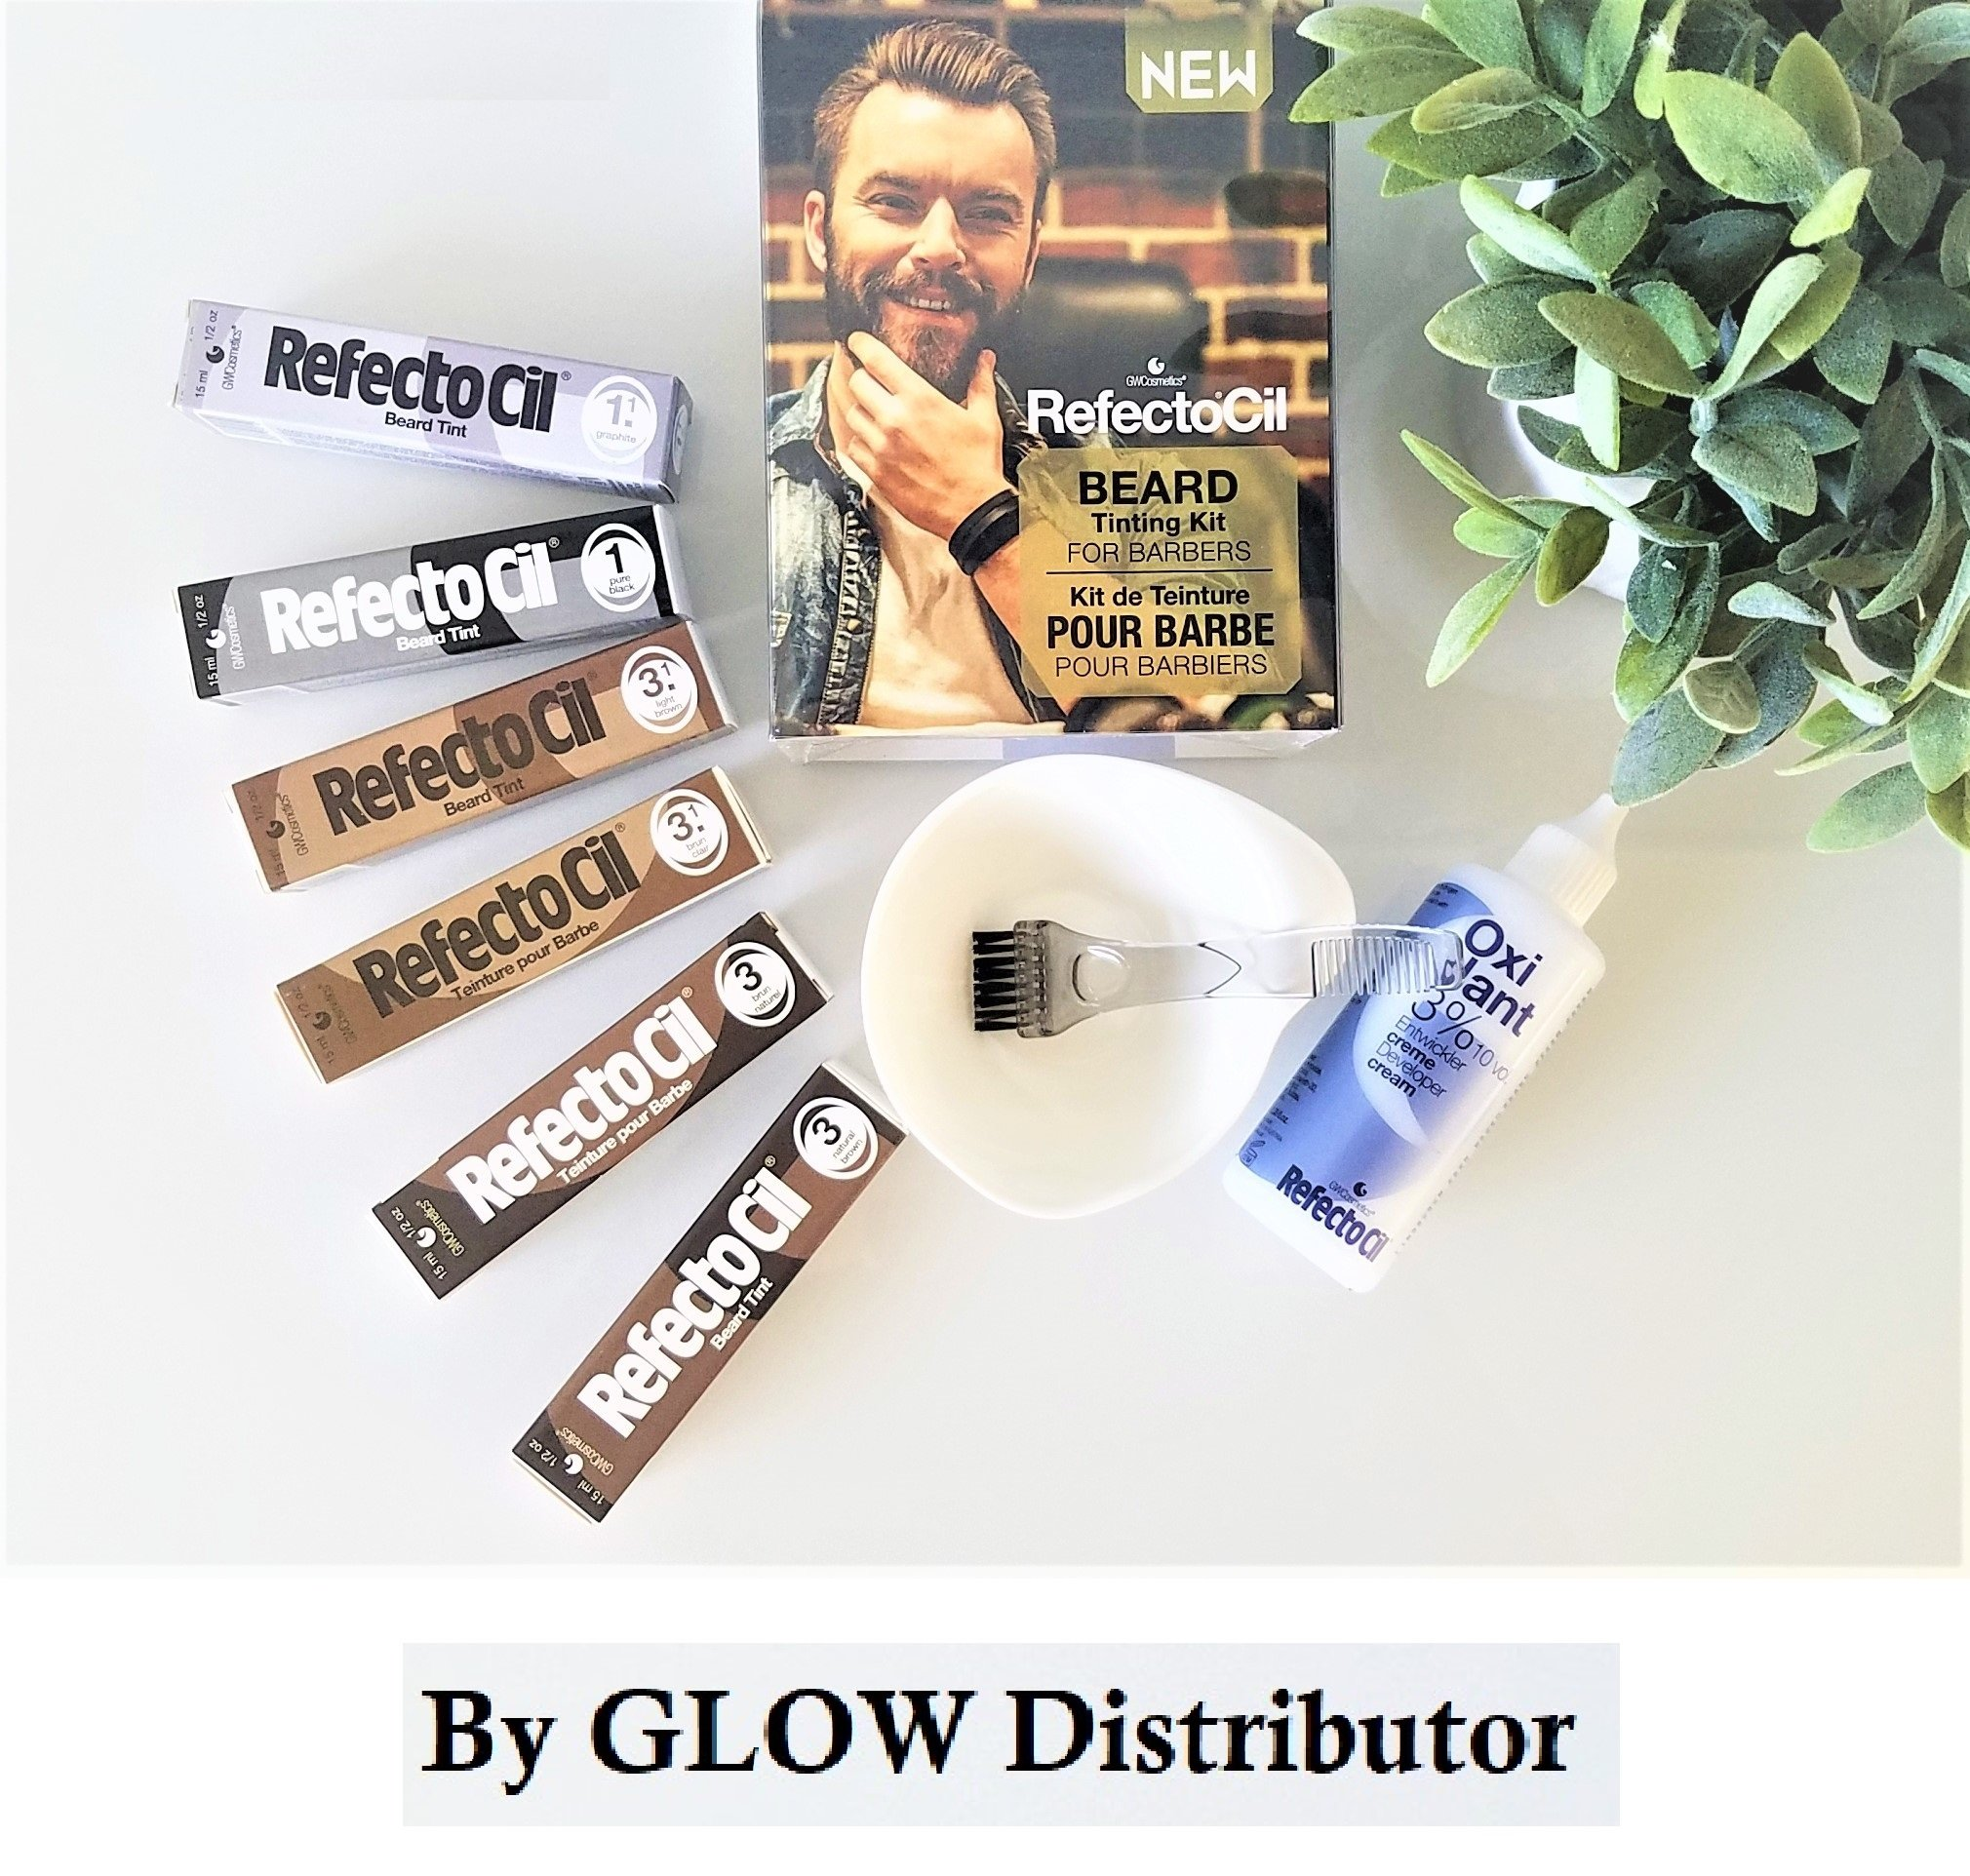 RefectoCil Beard Tinting Kit for Barbers by RefectoCil